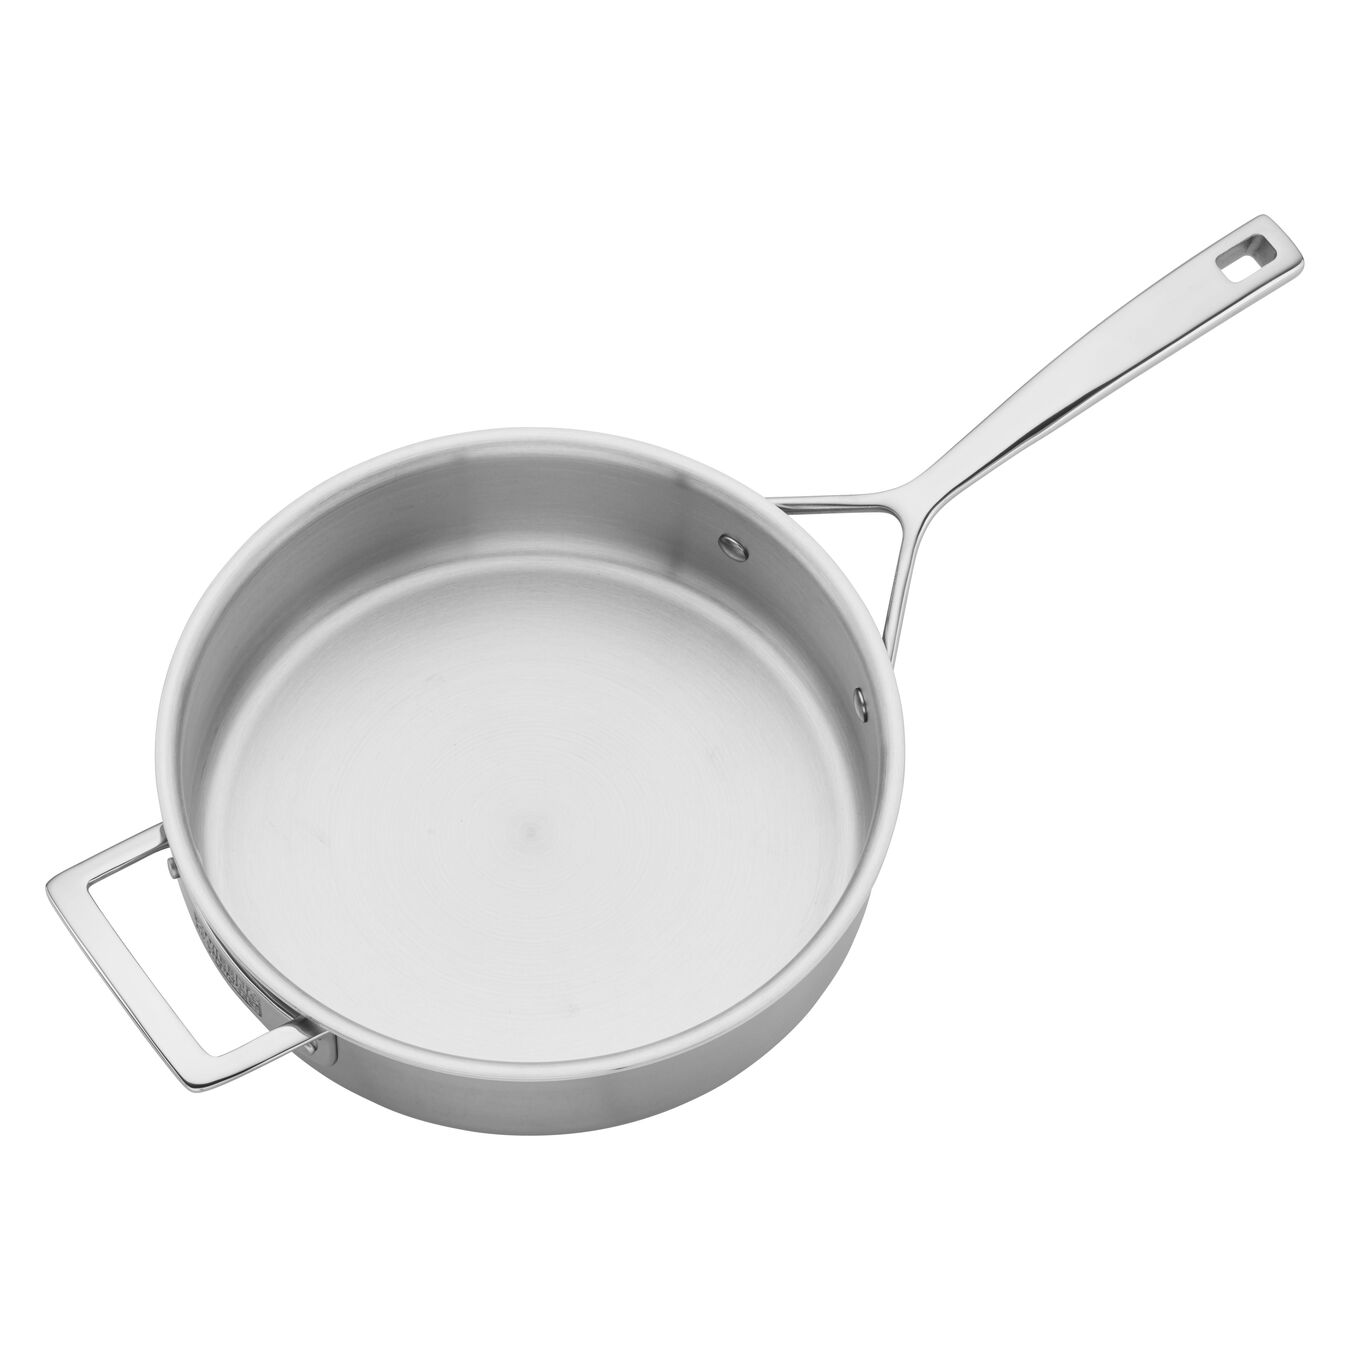 24 cm 18/10 Stainless Steel Saute pan with lid,,large 5